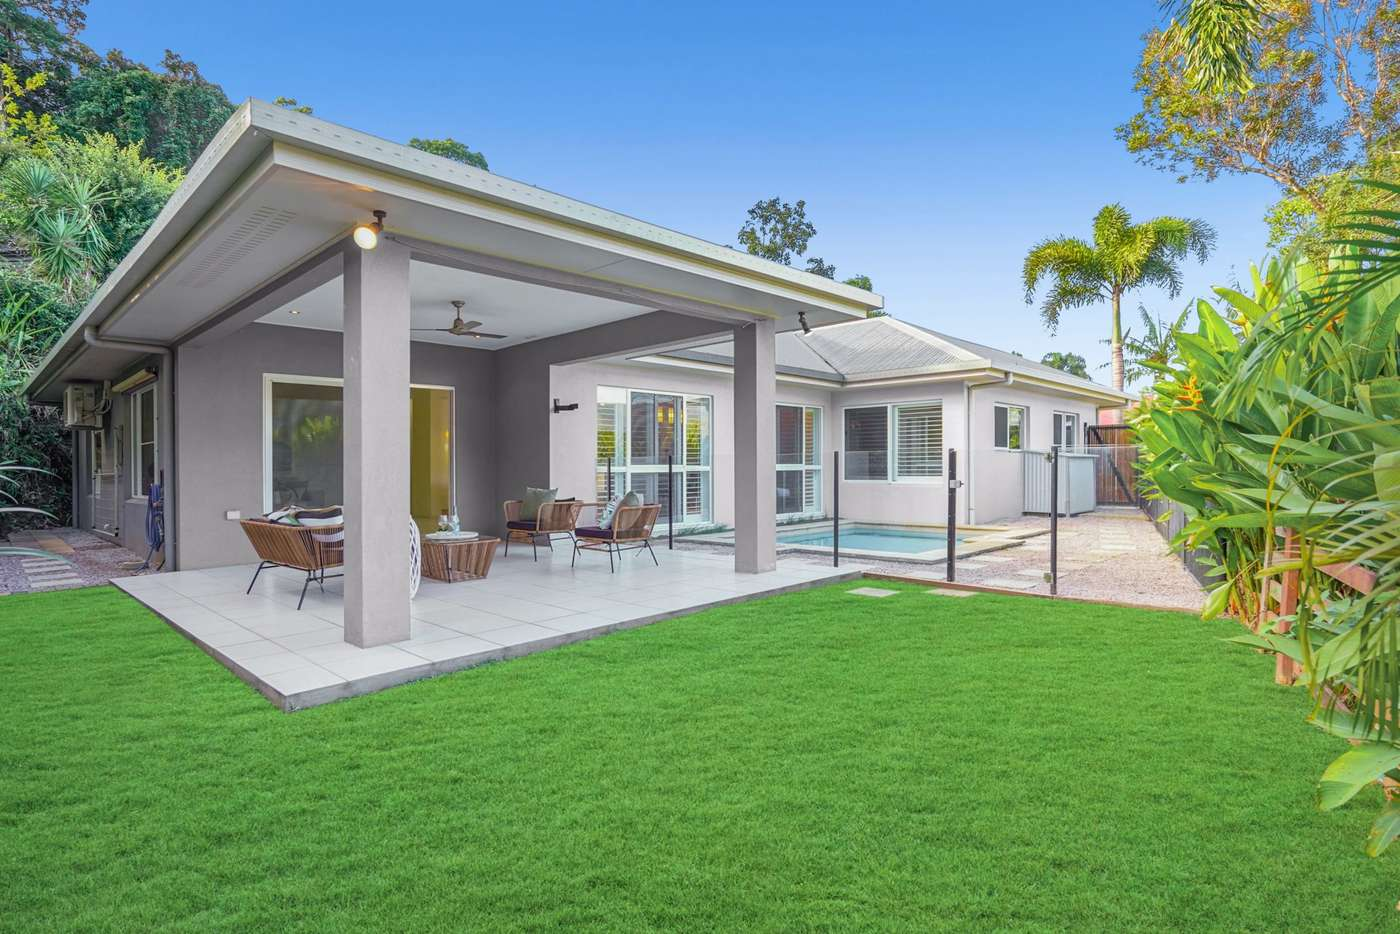 Main view of Homely house listing, 3 Findlay Street, Brinsmead QLD 4870